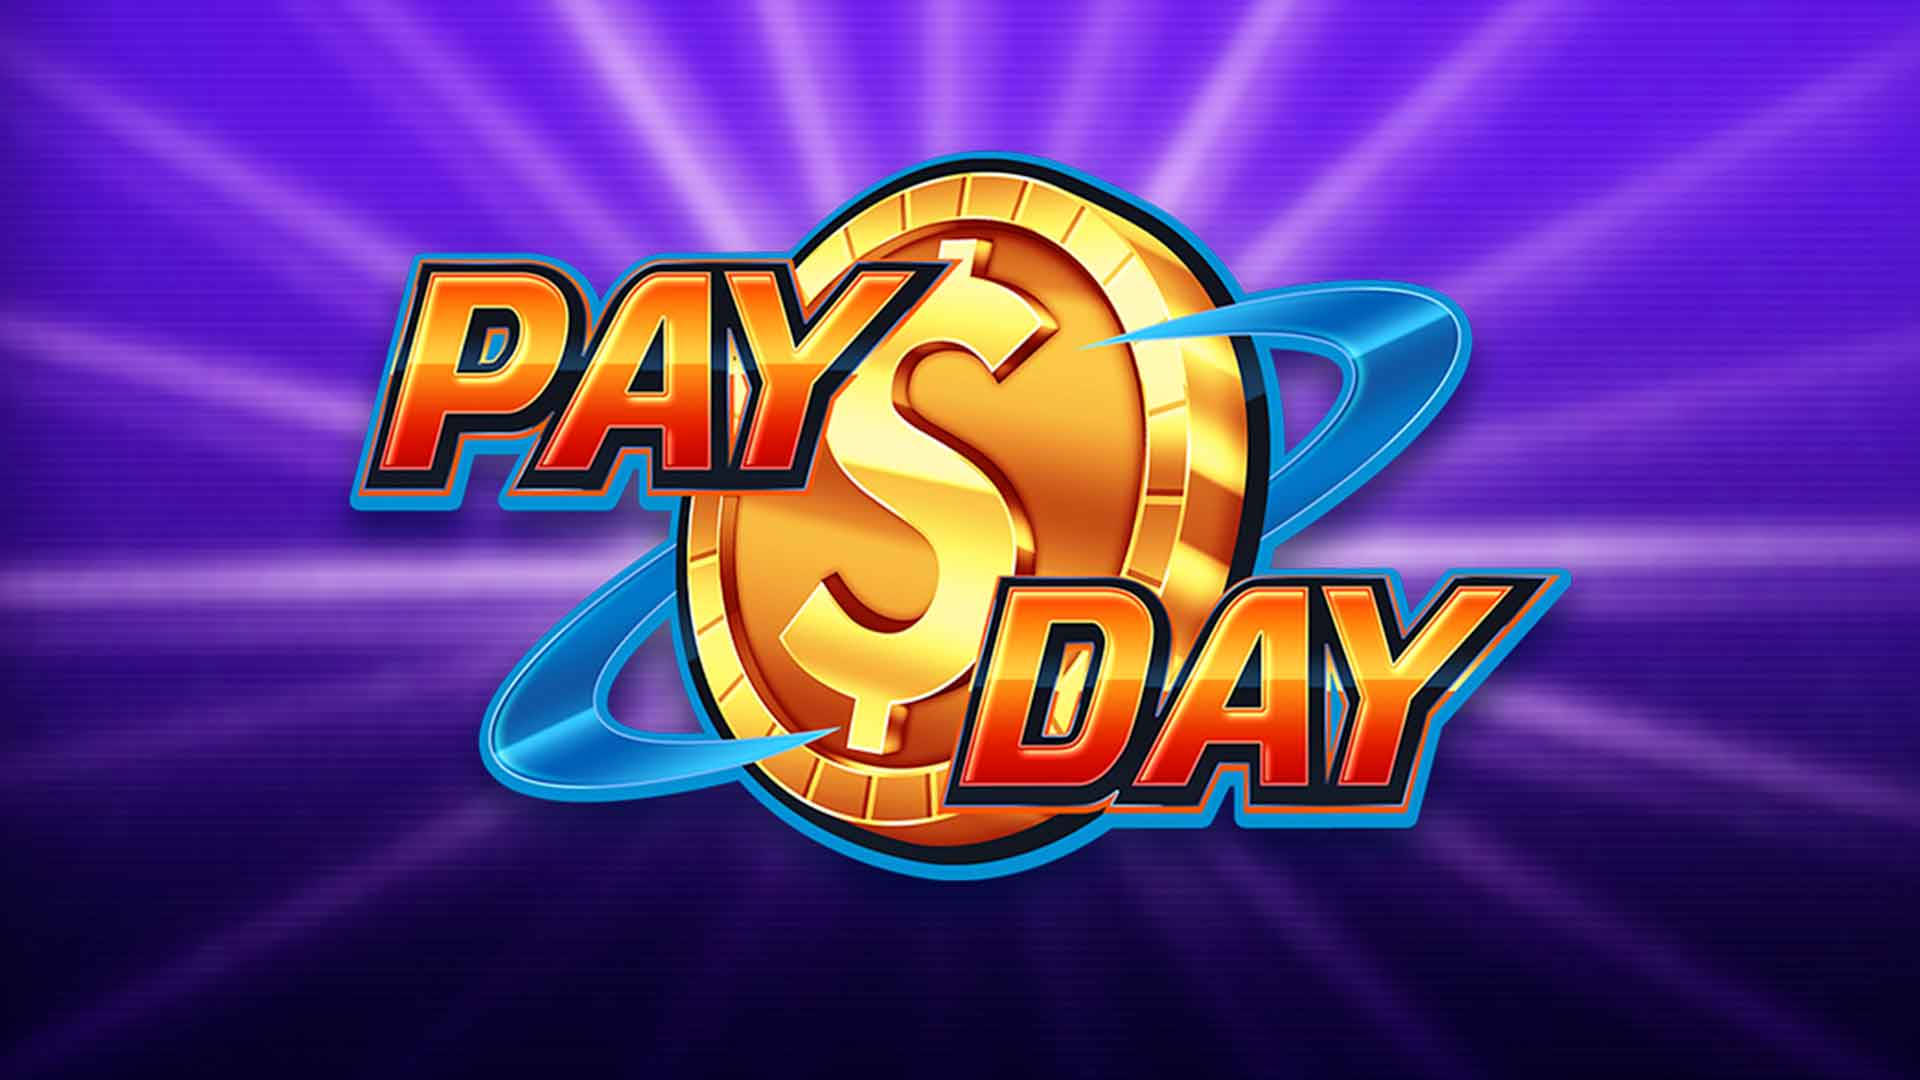 Pay Day slot image and top new weekly slot review